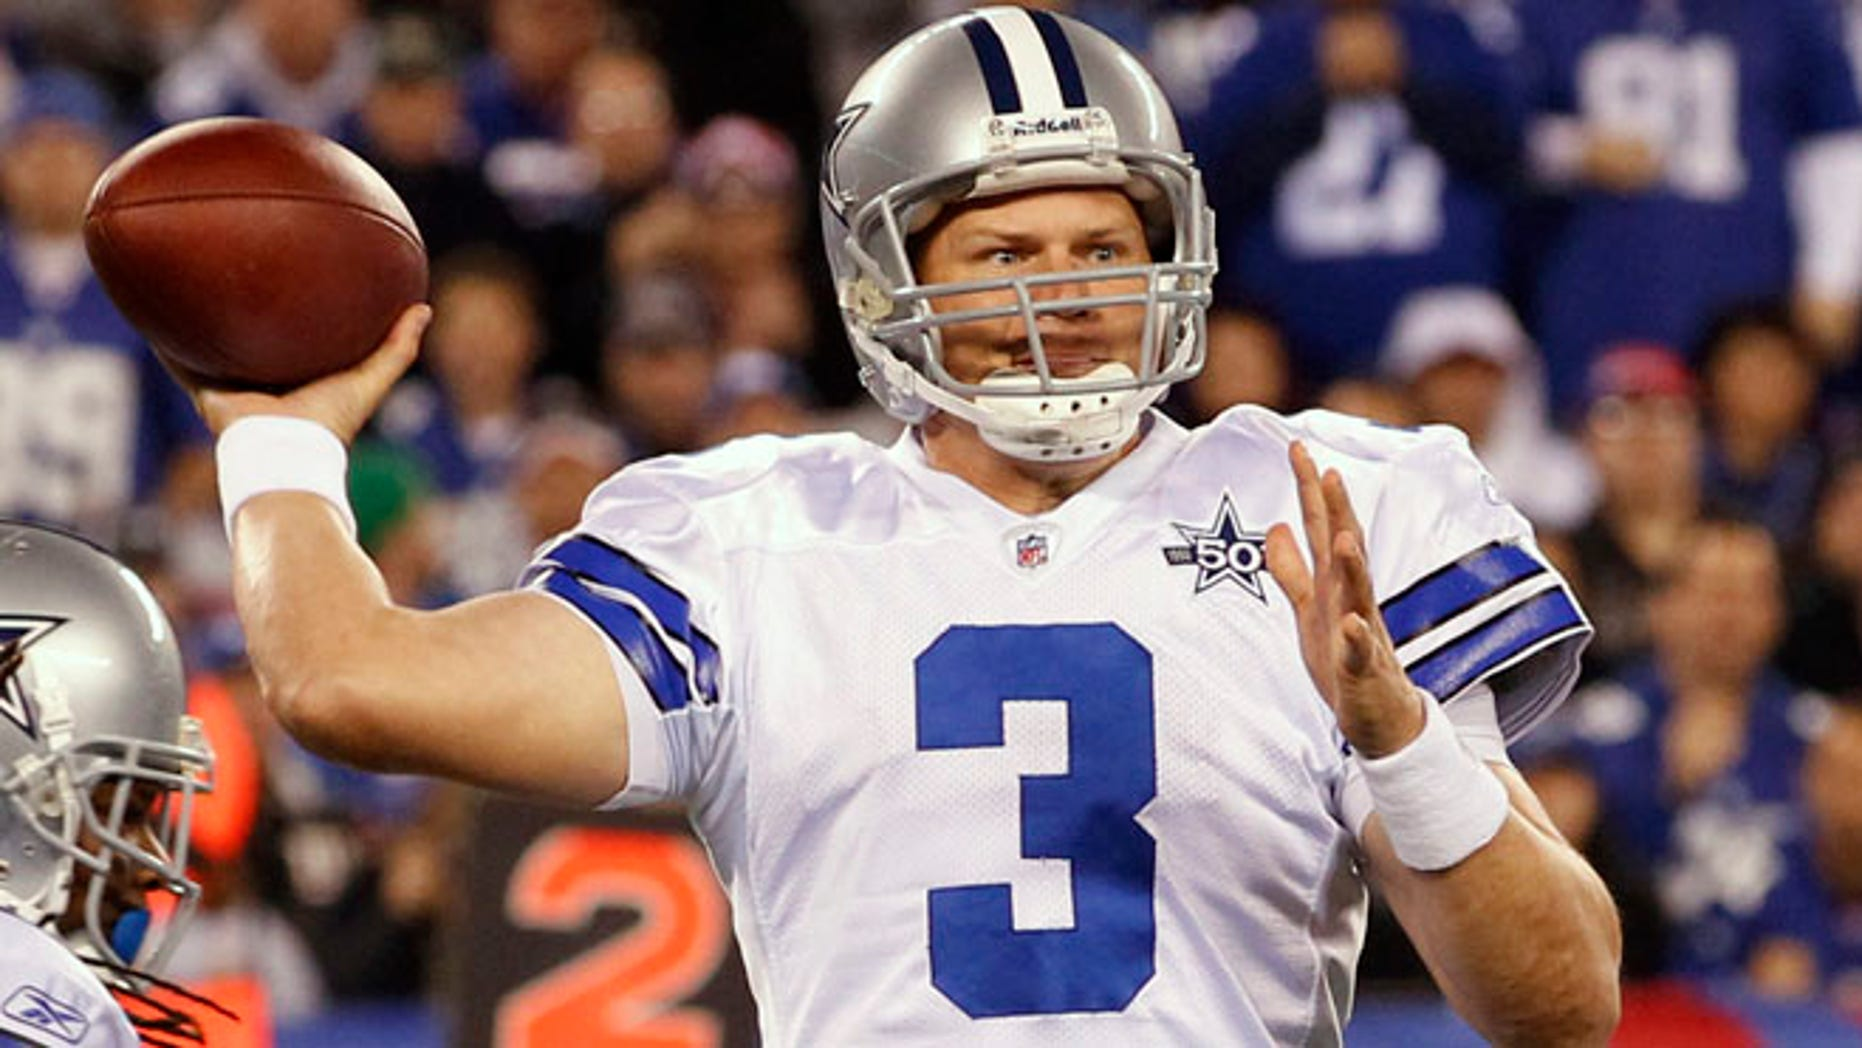 Dallas Cowboys quarterback Jon Kitna throws in a game against the New York Giants during his last stint with the team, which lasted from 2009-2011.